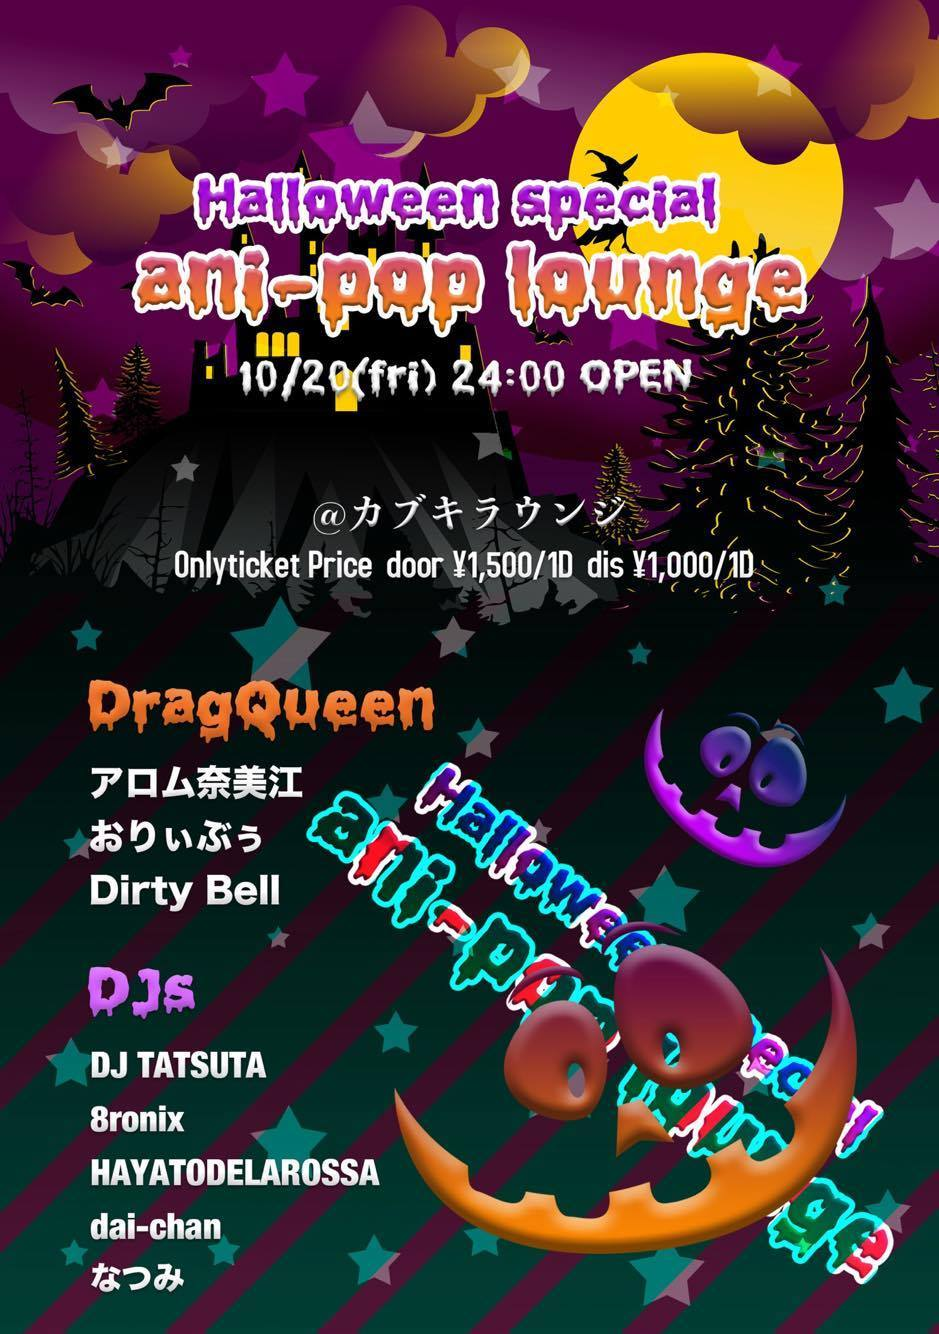 "10/20(fri)カブキラウンジ Halloween special ""ani-pop lounge"""